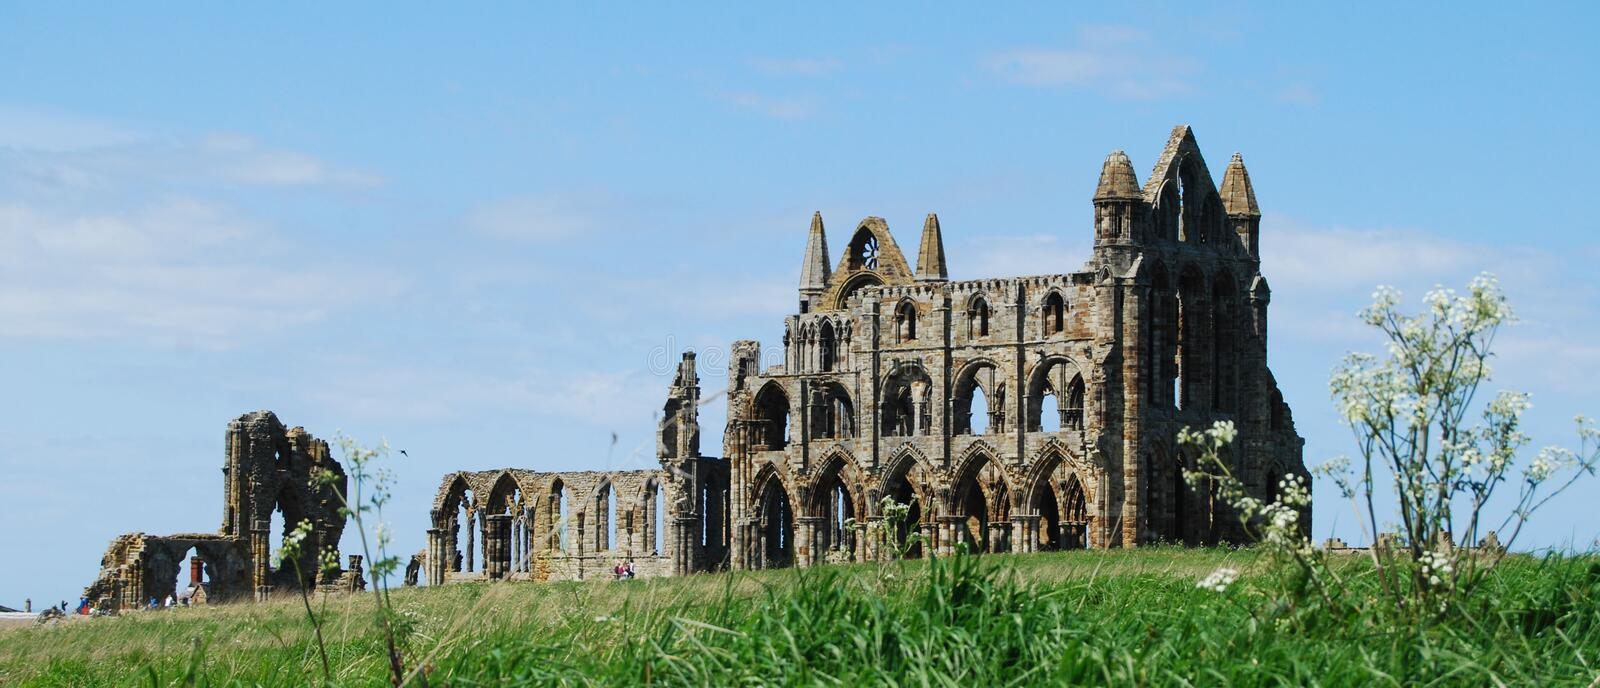 Whitby Abbey, North Yorkshire royalty free stock images